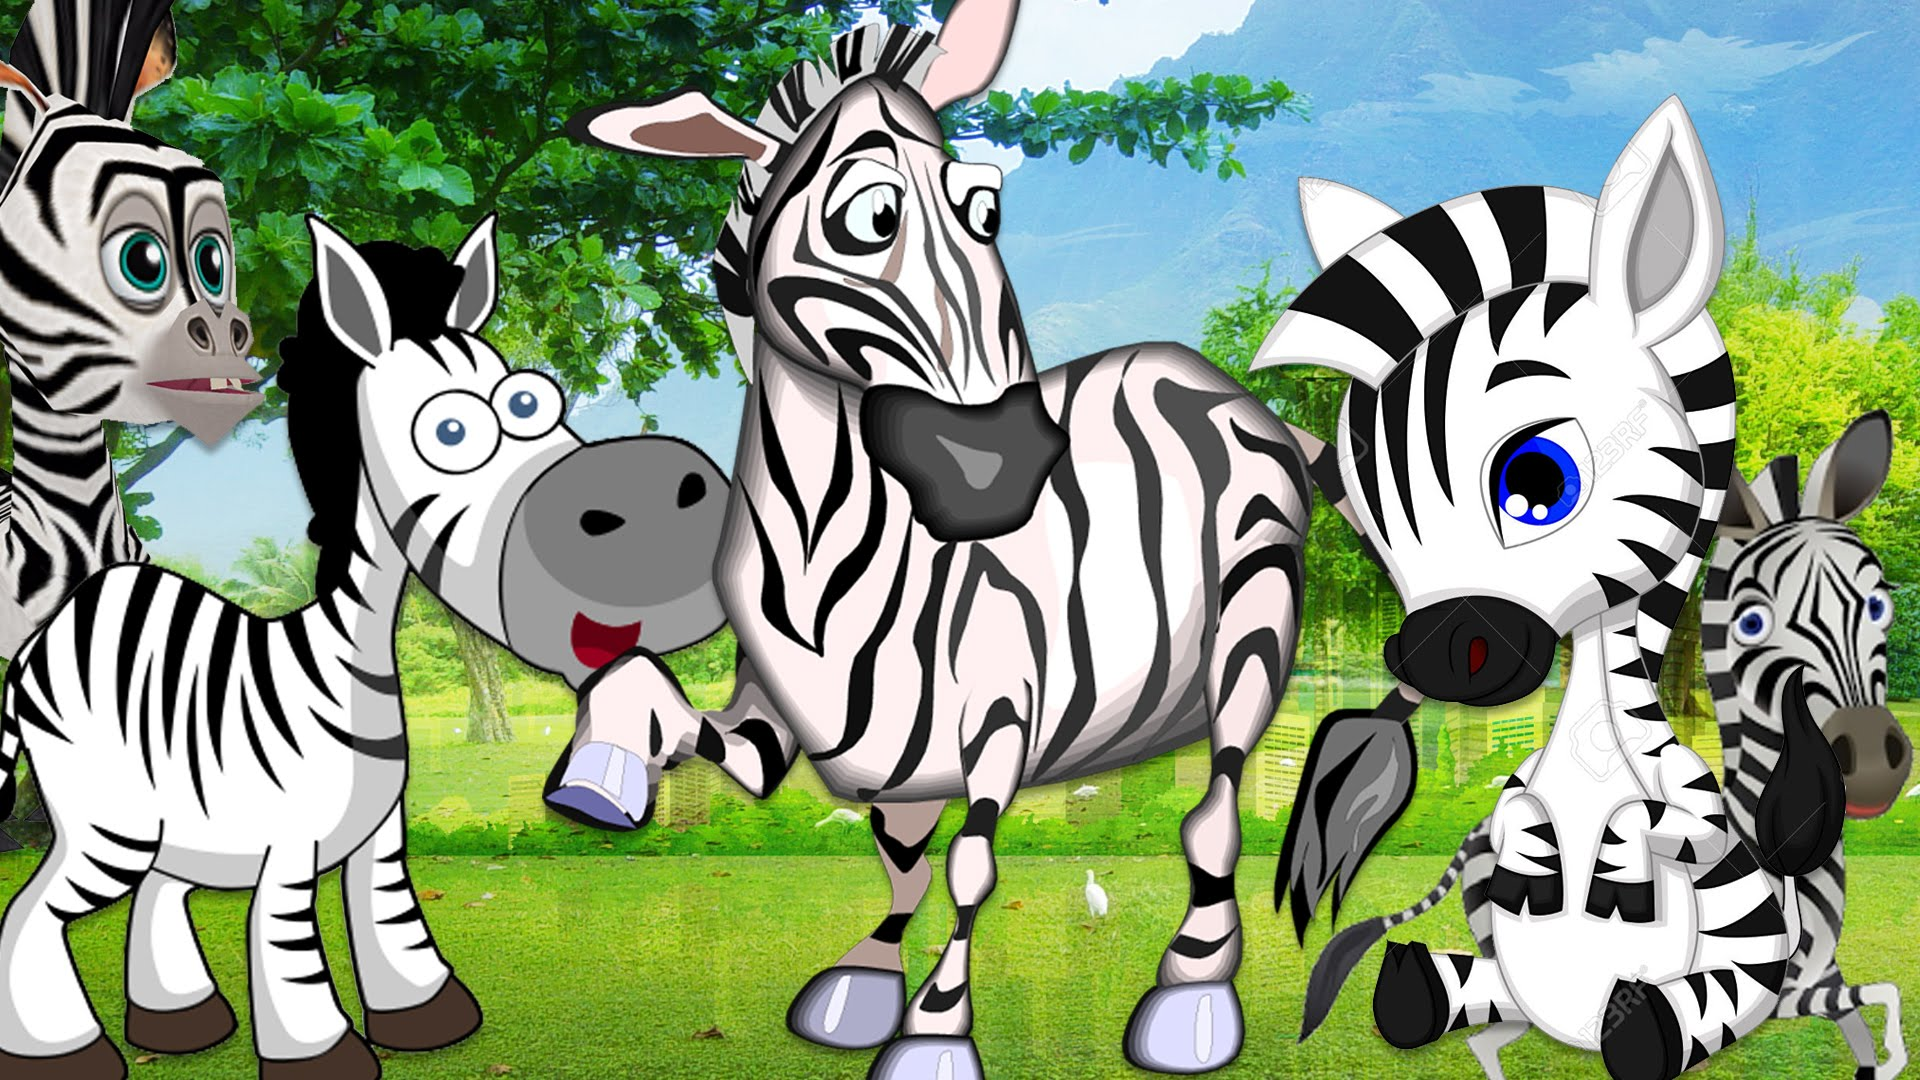 Zebra Cartoons Finger Family Rhymes For Children.